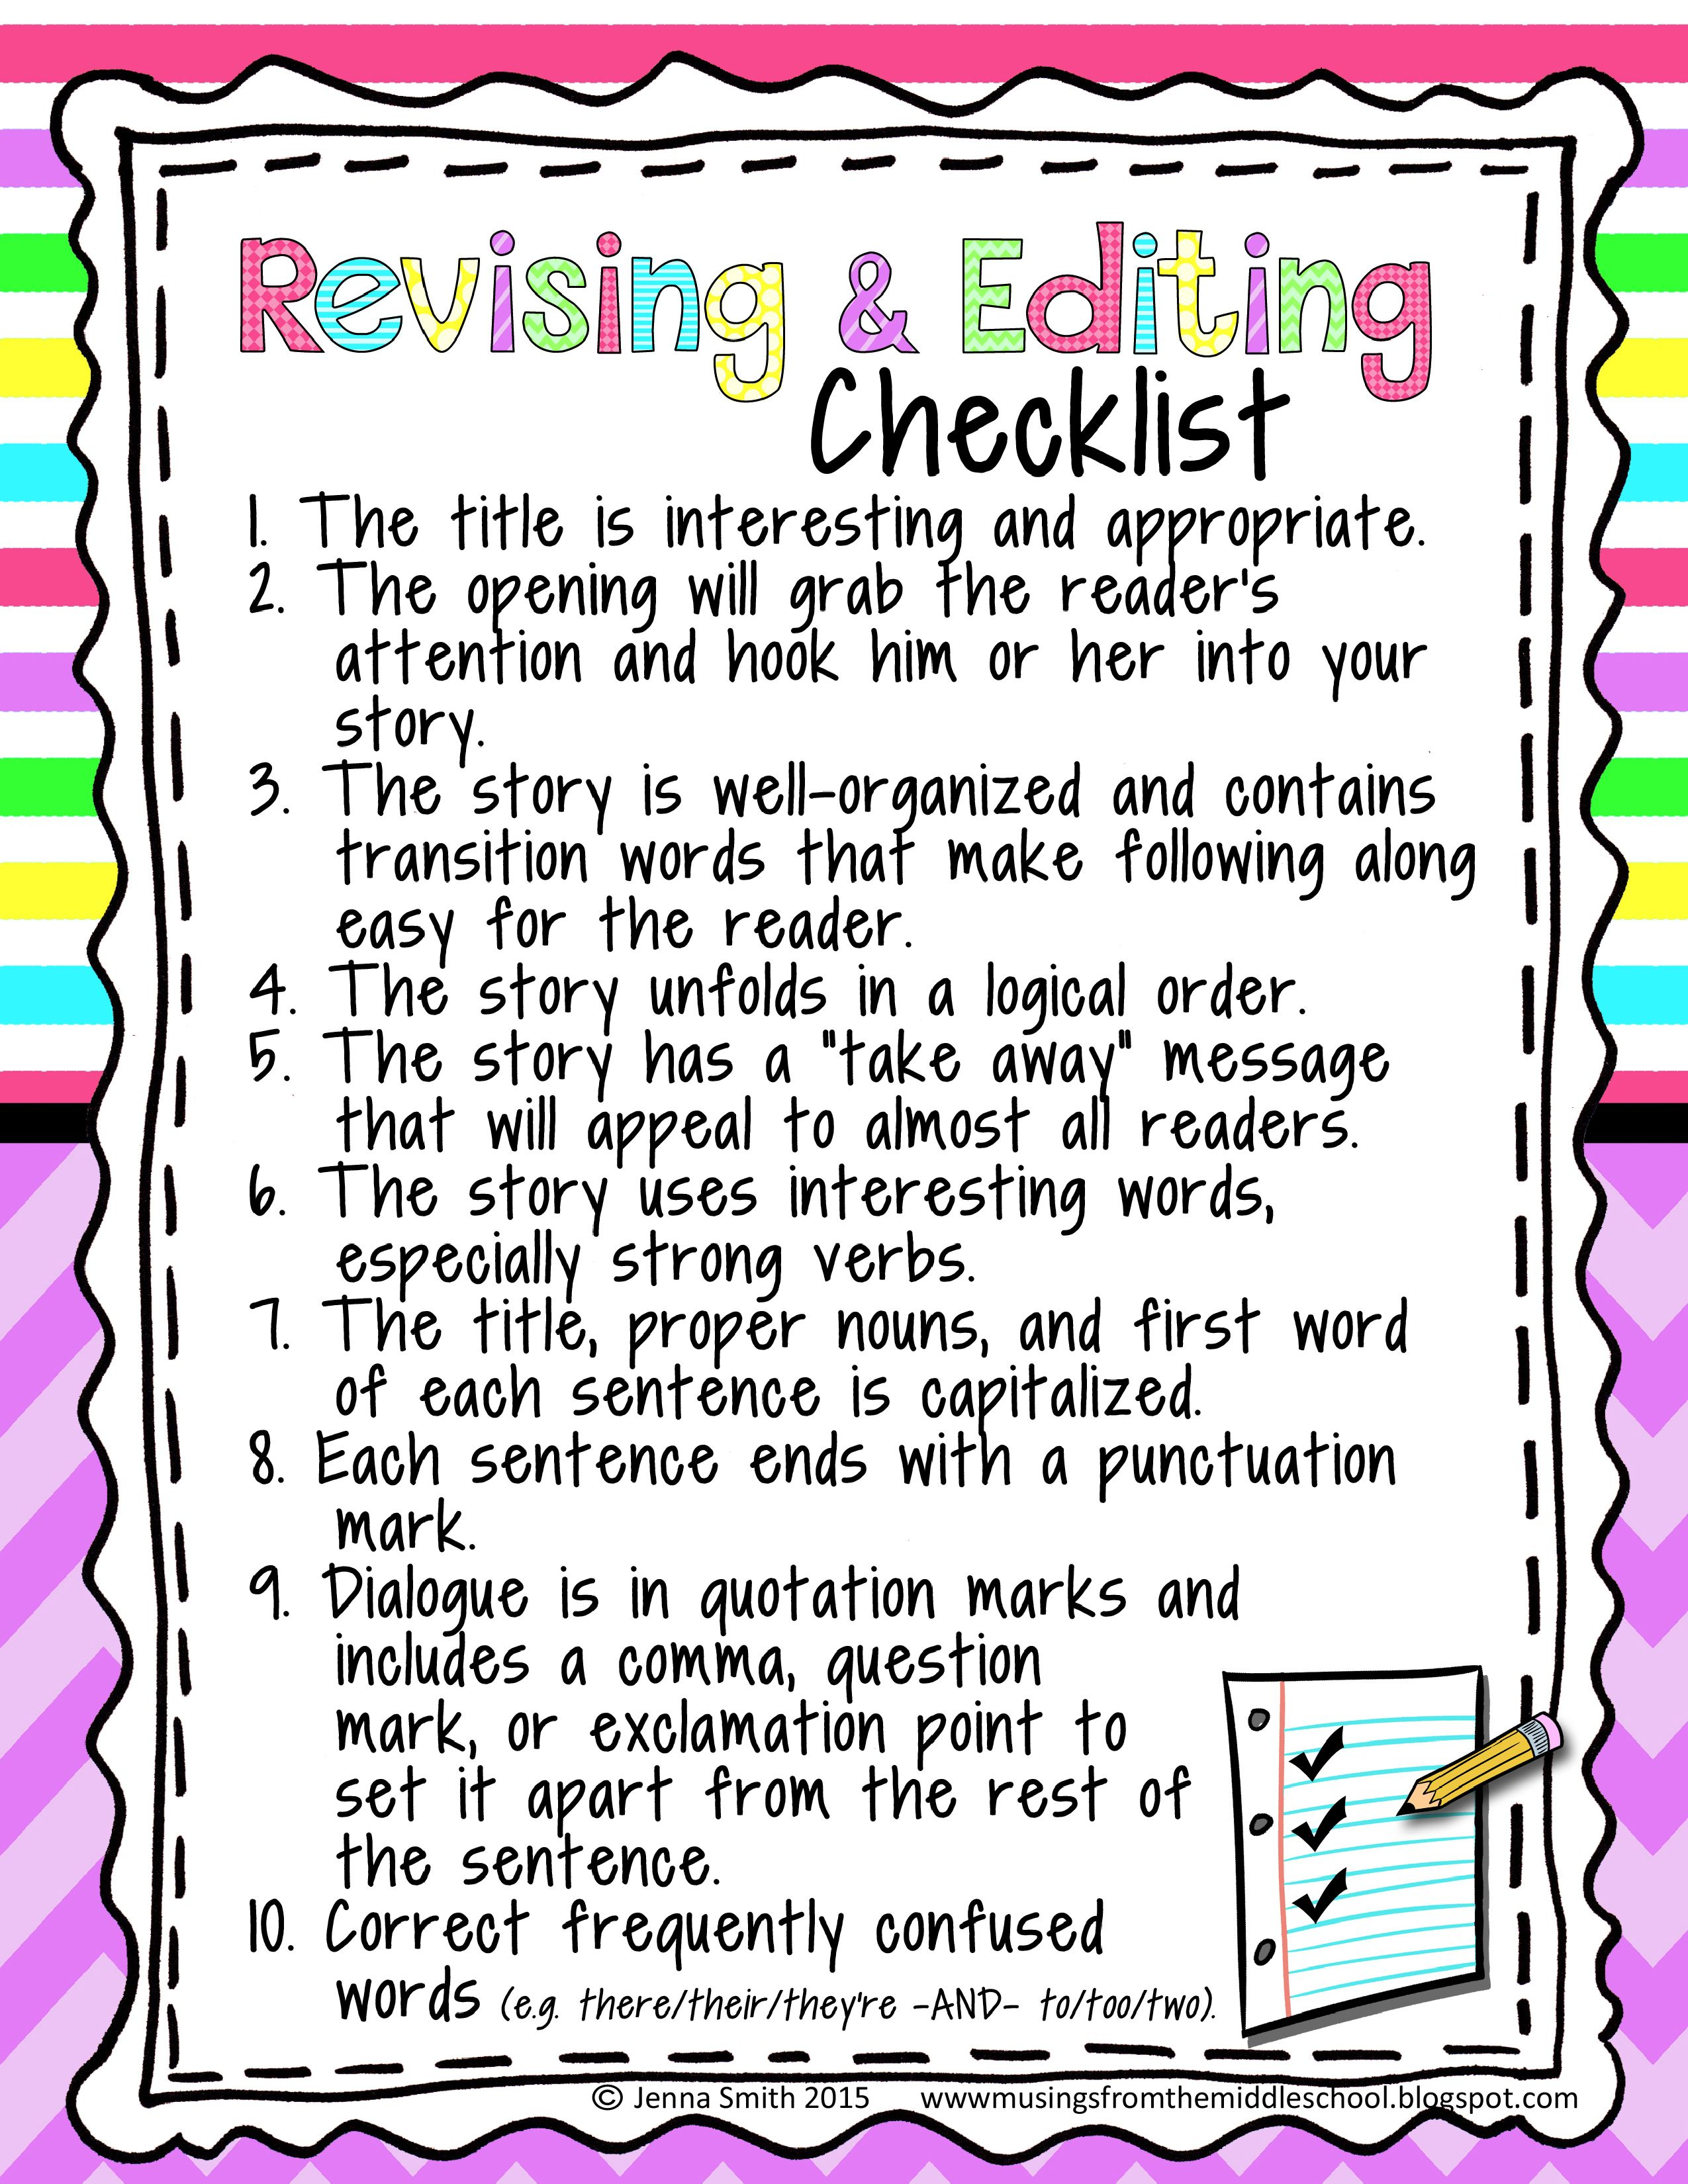 003 Revising and Editing Checklist for Upper Grades TpT FREE